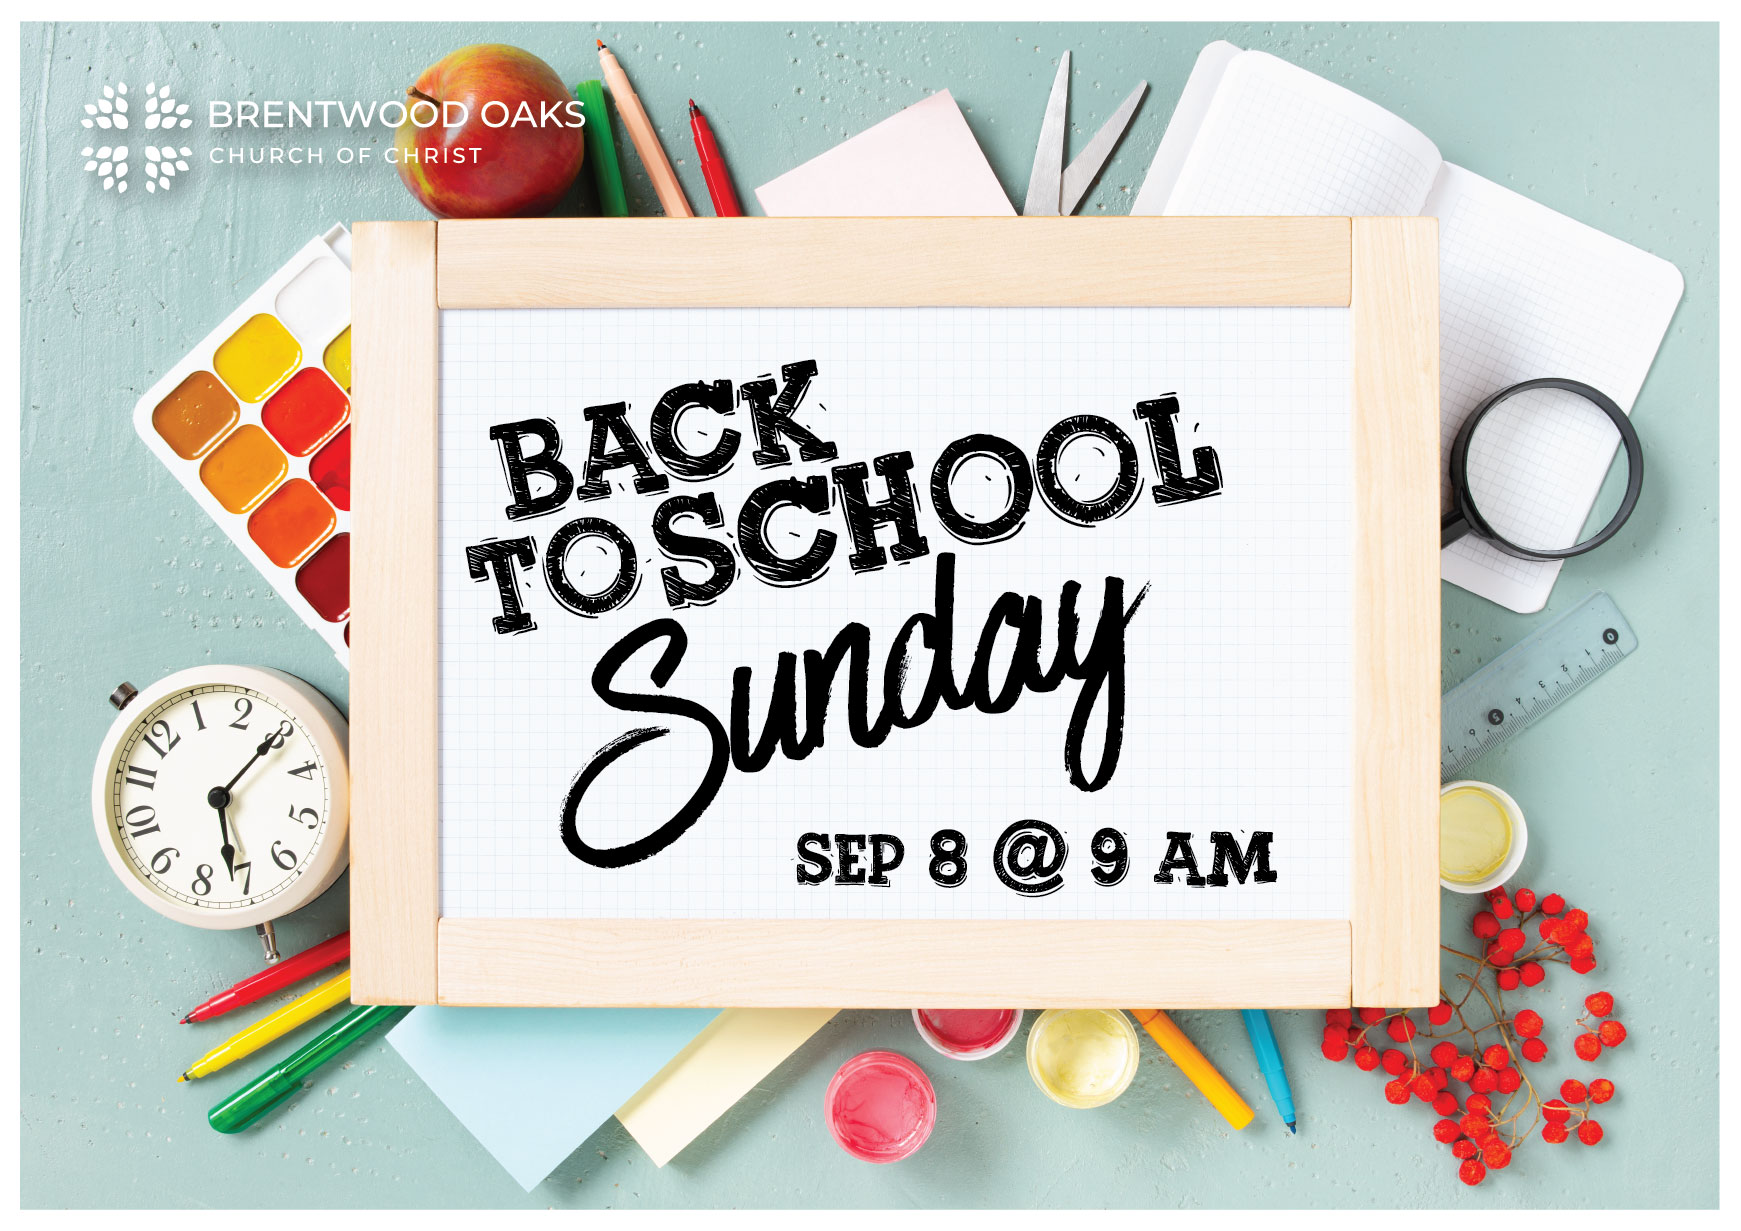 BacktoschoolSunday-04.jpg